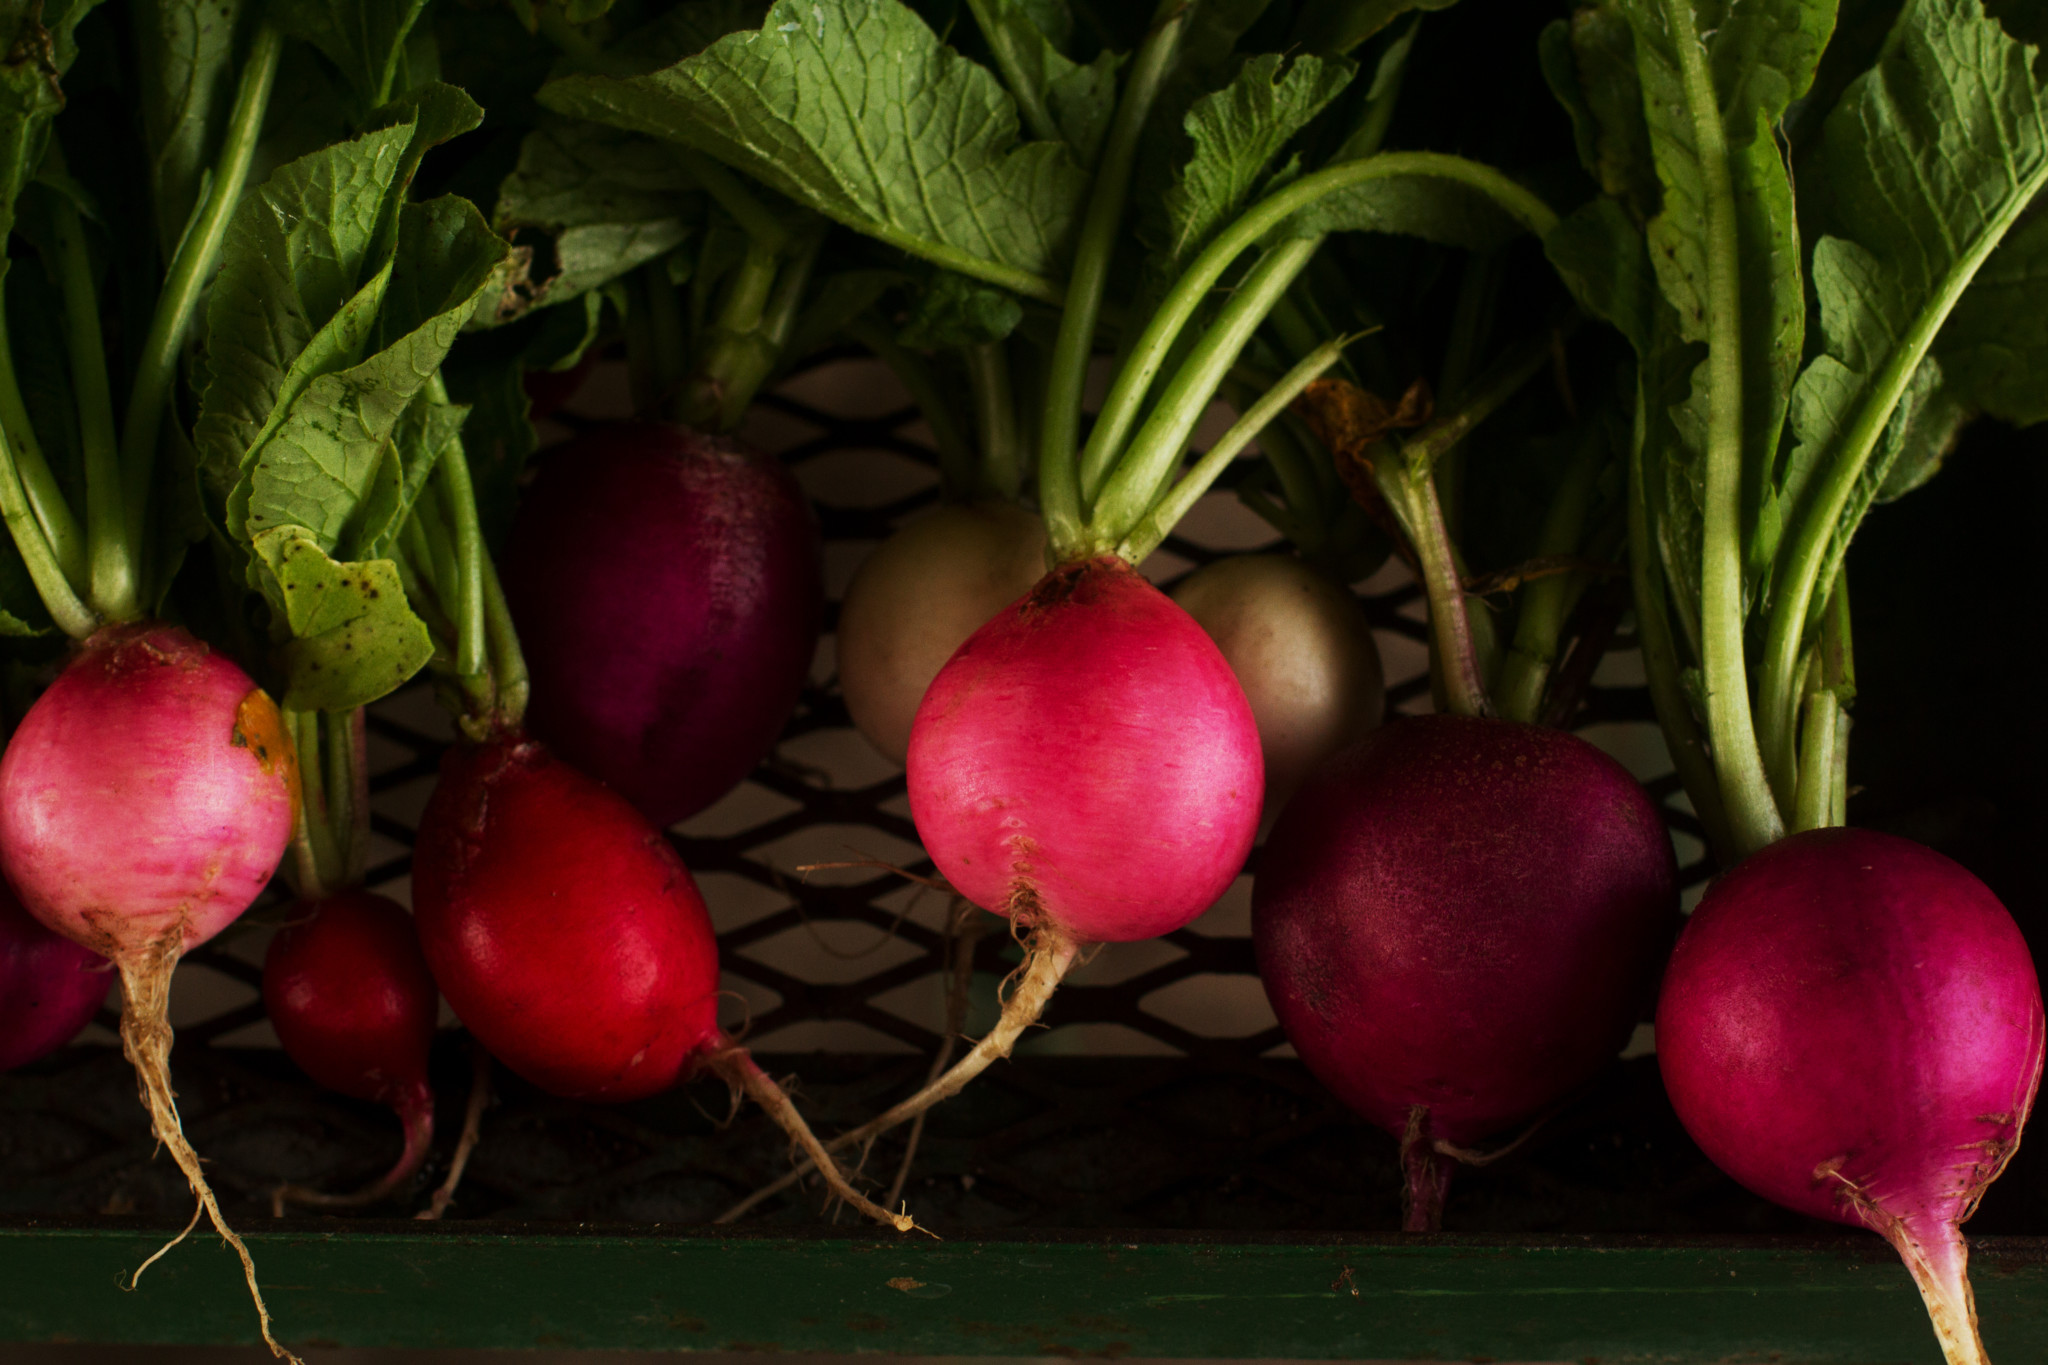 Fresh beets at farm in morning light